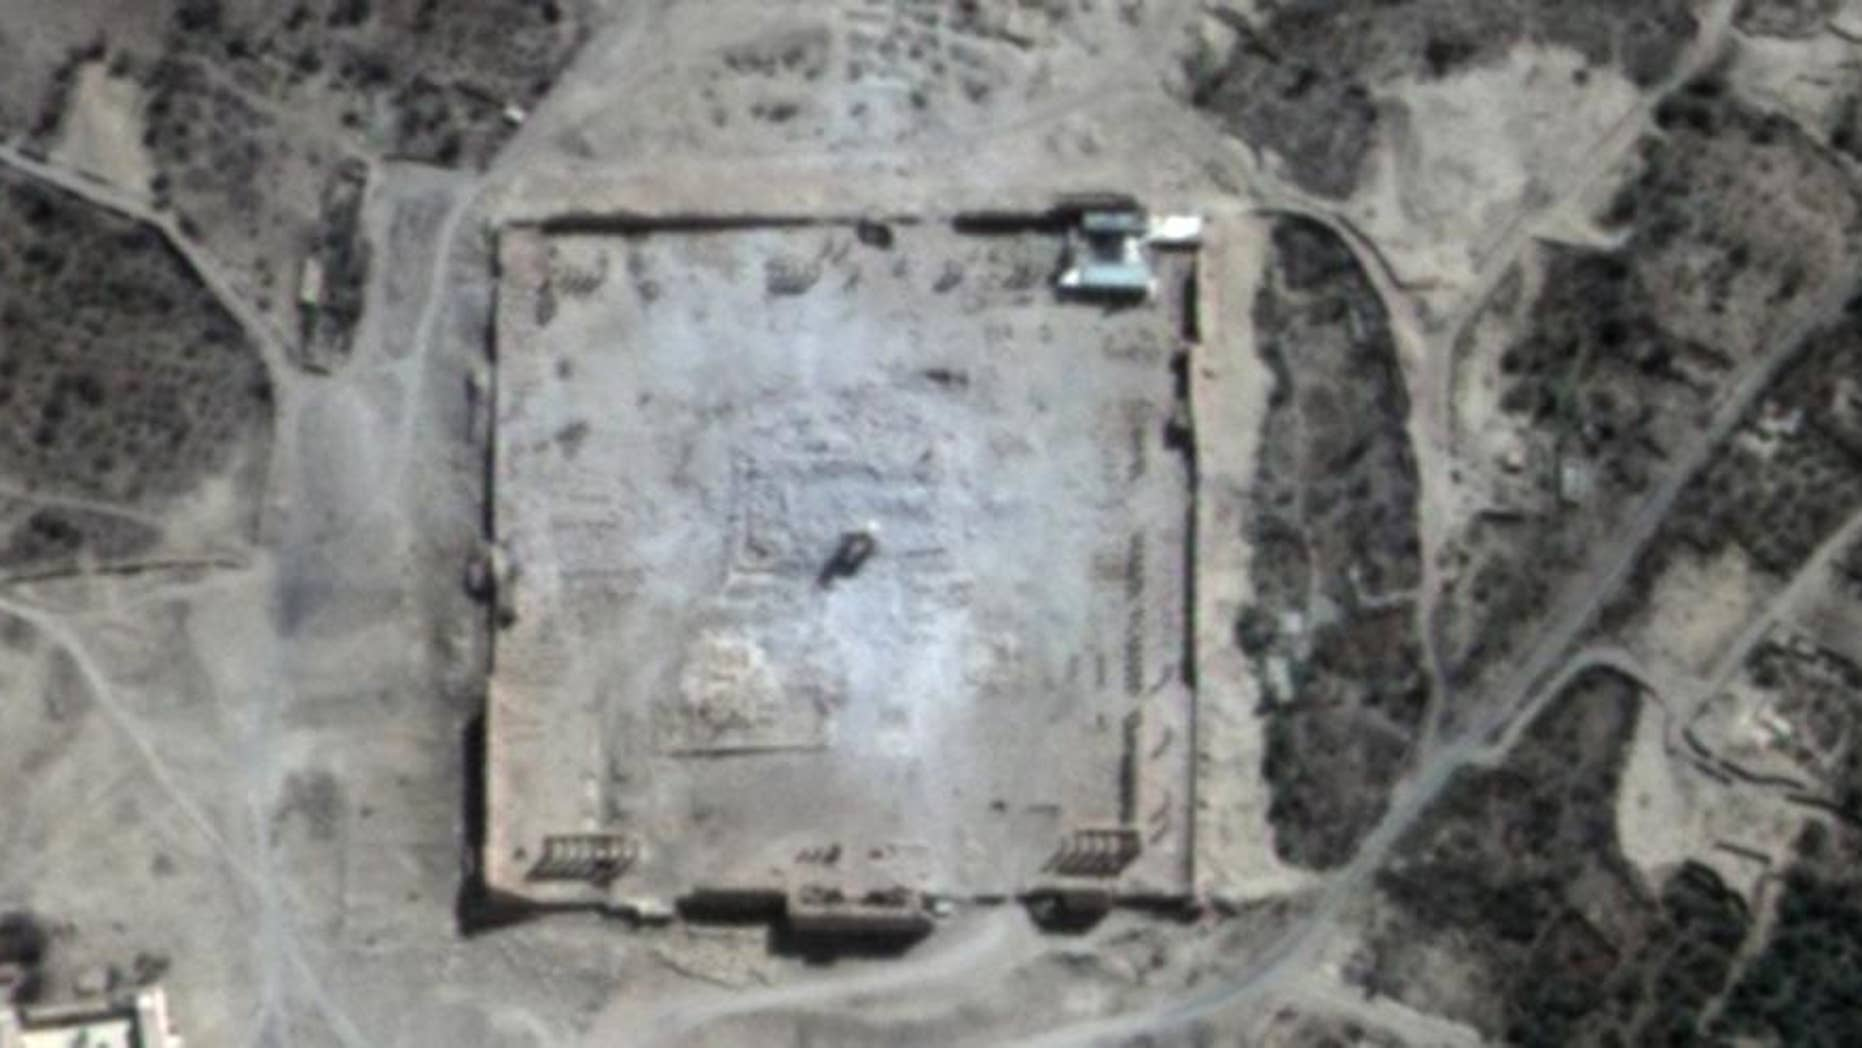 This Monday, Aug. 31, 2015 satellite image provided by UNITAR-UNOSAT shows damage to the main building of the ancient Temple of Bel in the Palmyra, Syria. The main building has been destroyed, a United Nations agency said. The image was taken a day after a massive explosion was set off near the 2,000-year-old temple in the city occupied by Islamic State militants. (UrtheCast, UNITAR-UNOSAT via AP)